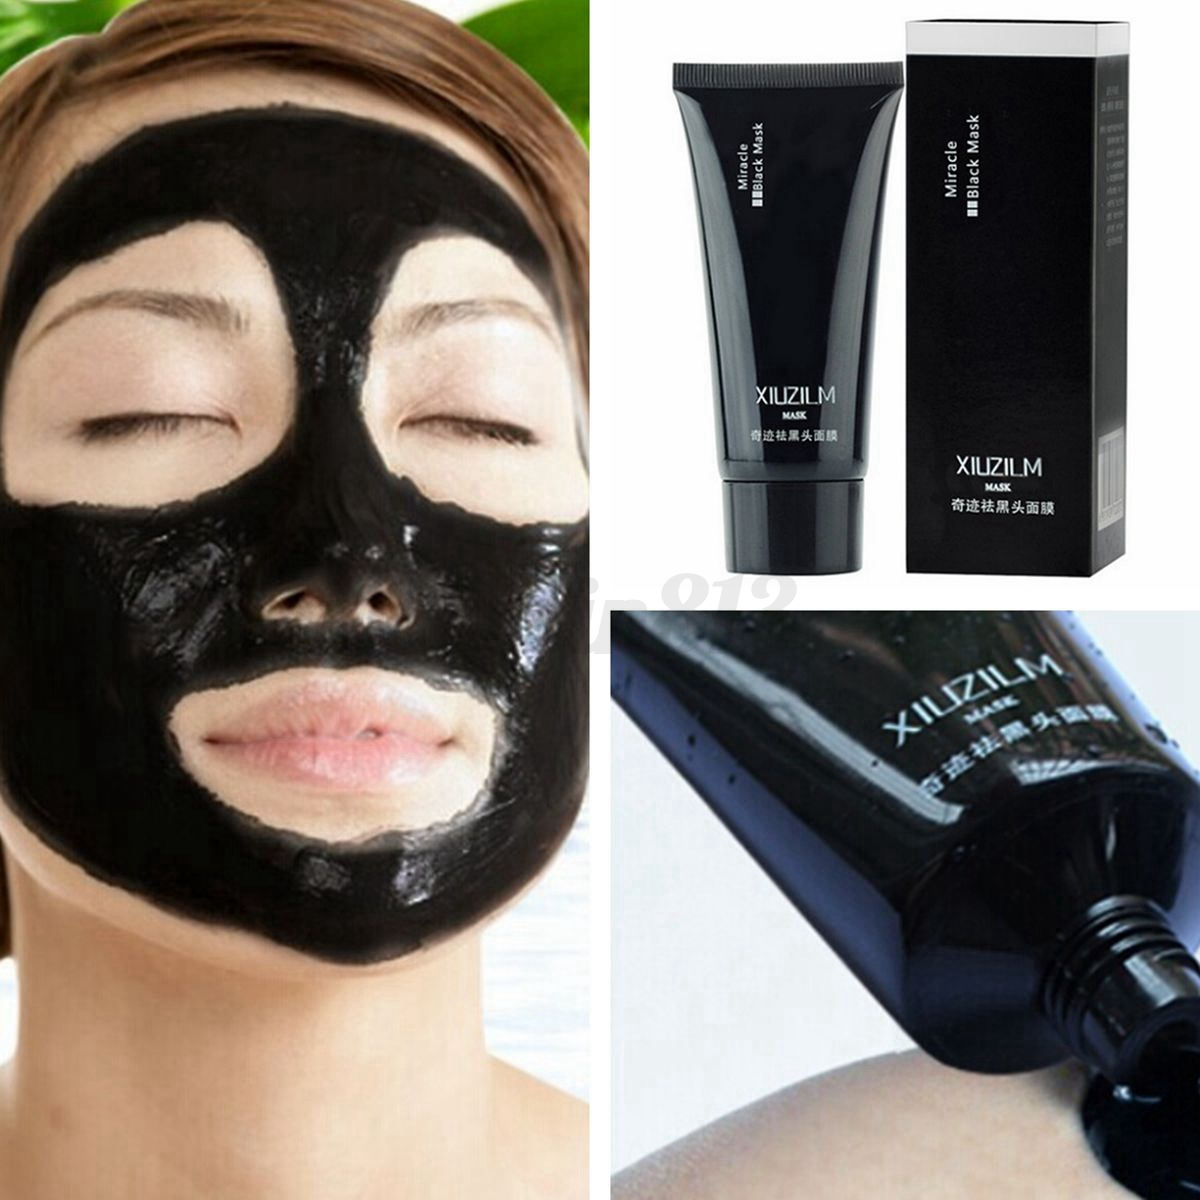 how to use pilaten blackhead remover mask